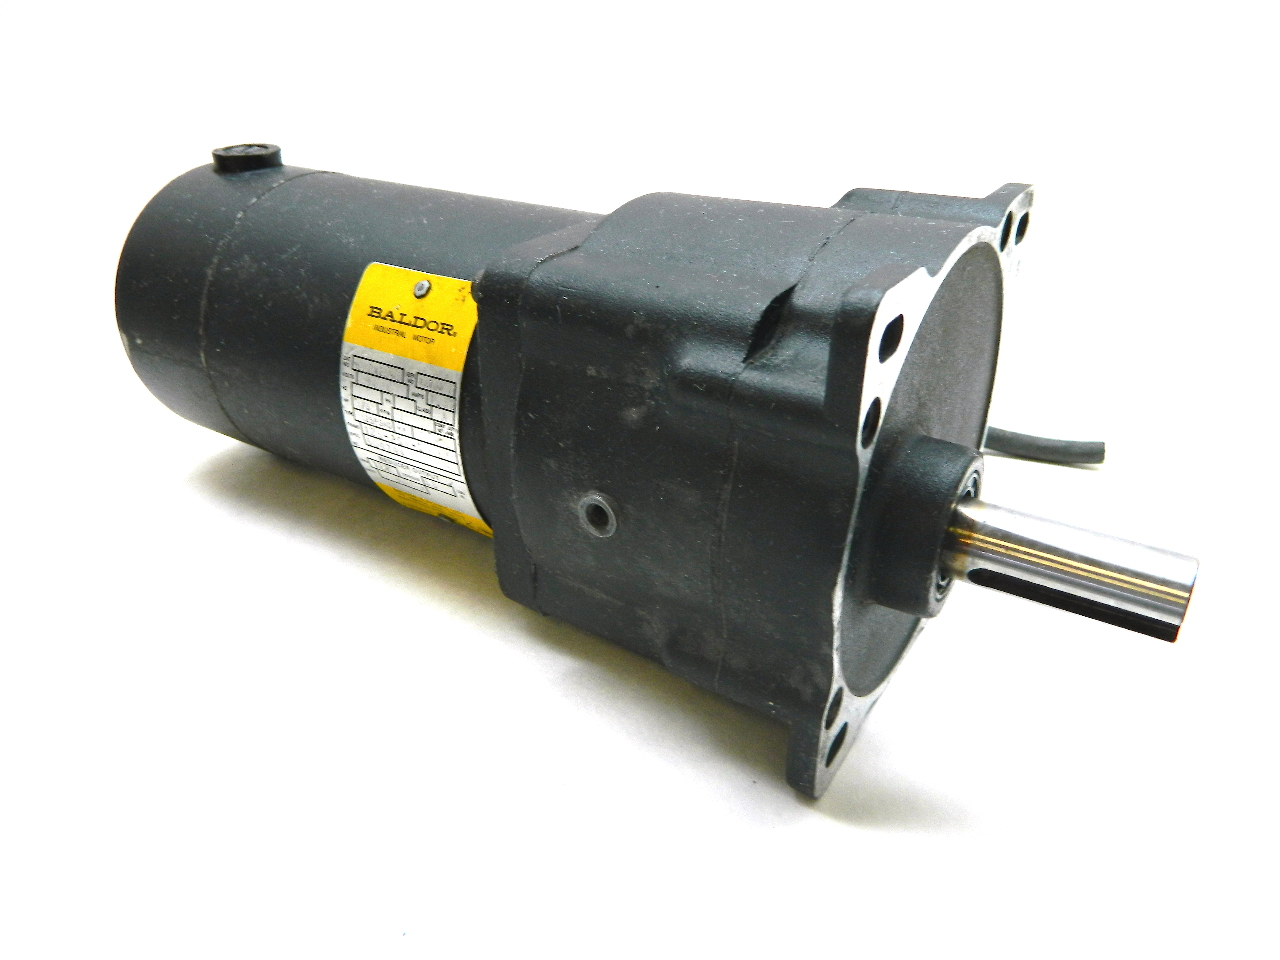 Baldor gpp12543 dc parallel shaft gear motor 90 vdc 125 for 90 volt dc motor